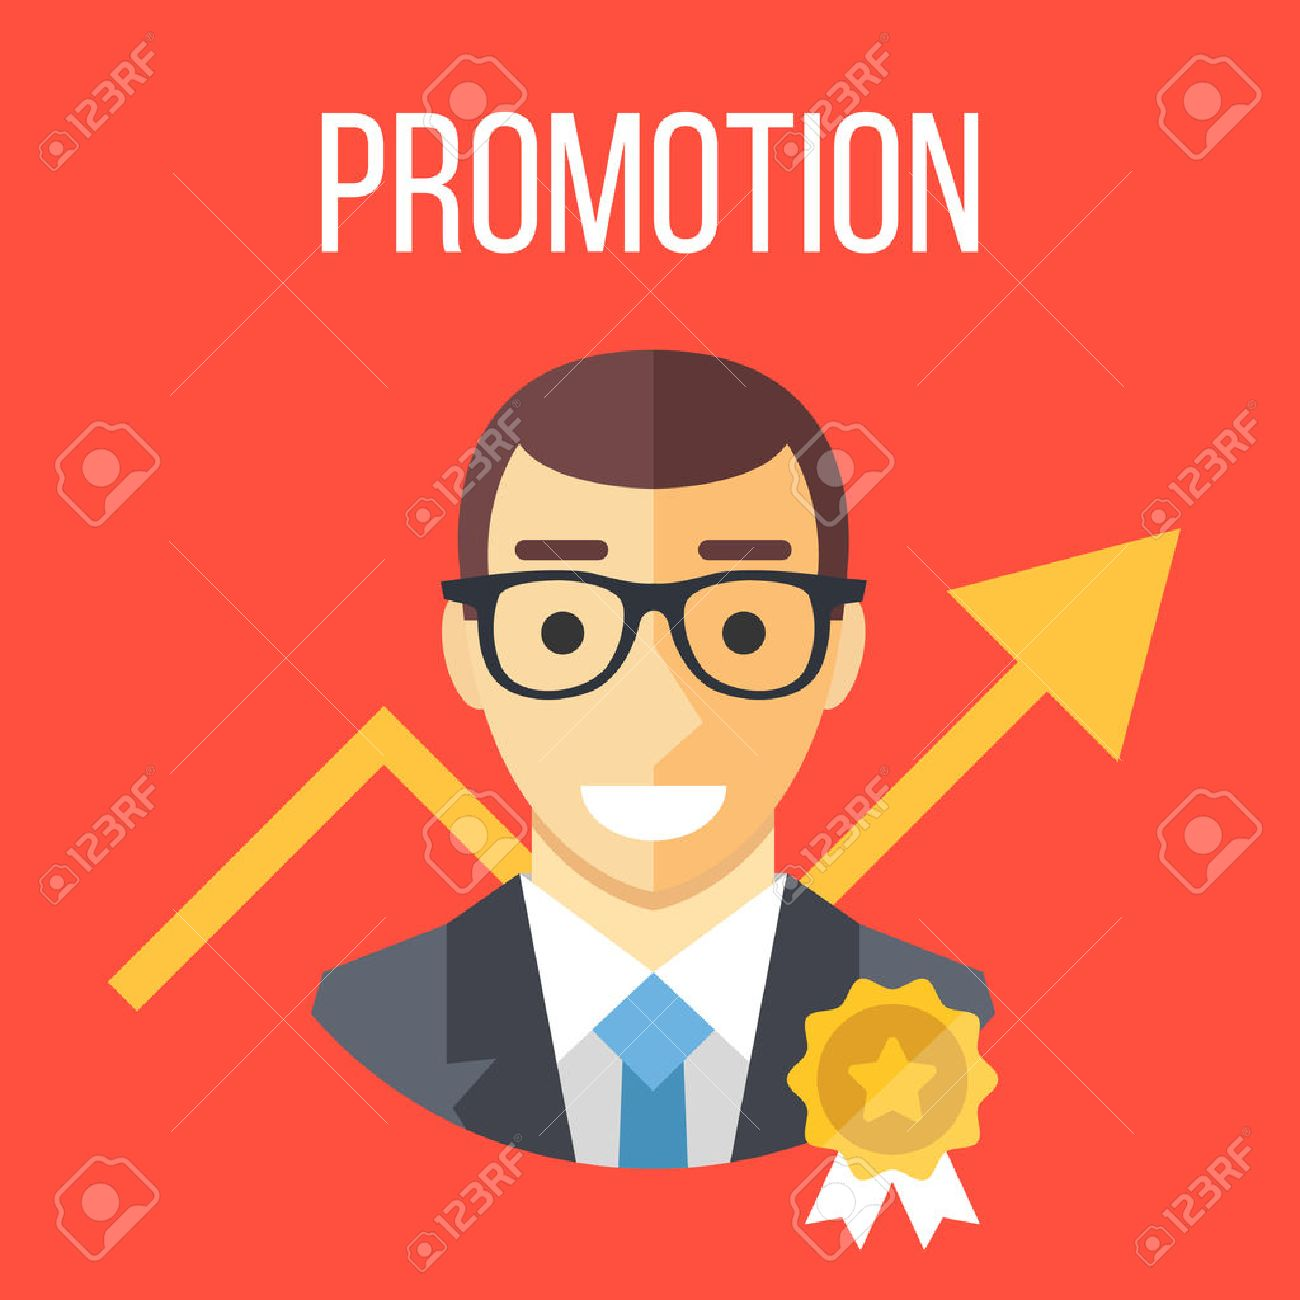 job promotion flat illustration career ladder advance in office job promotion flat illustration career ladder advance in office job development promotion